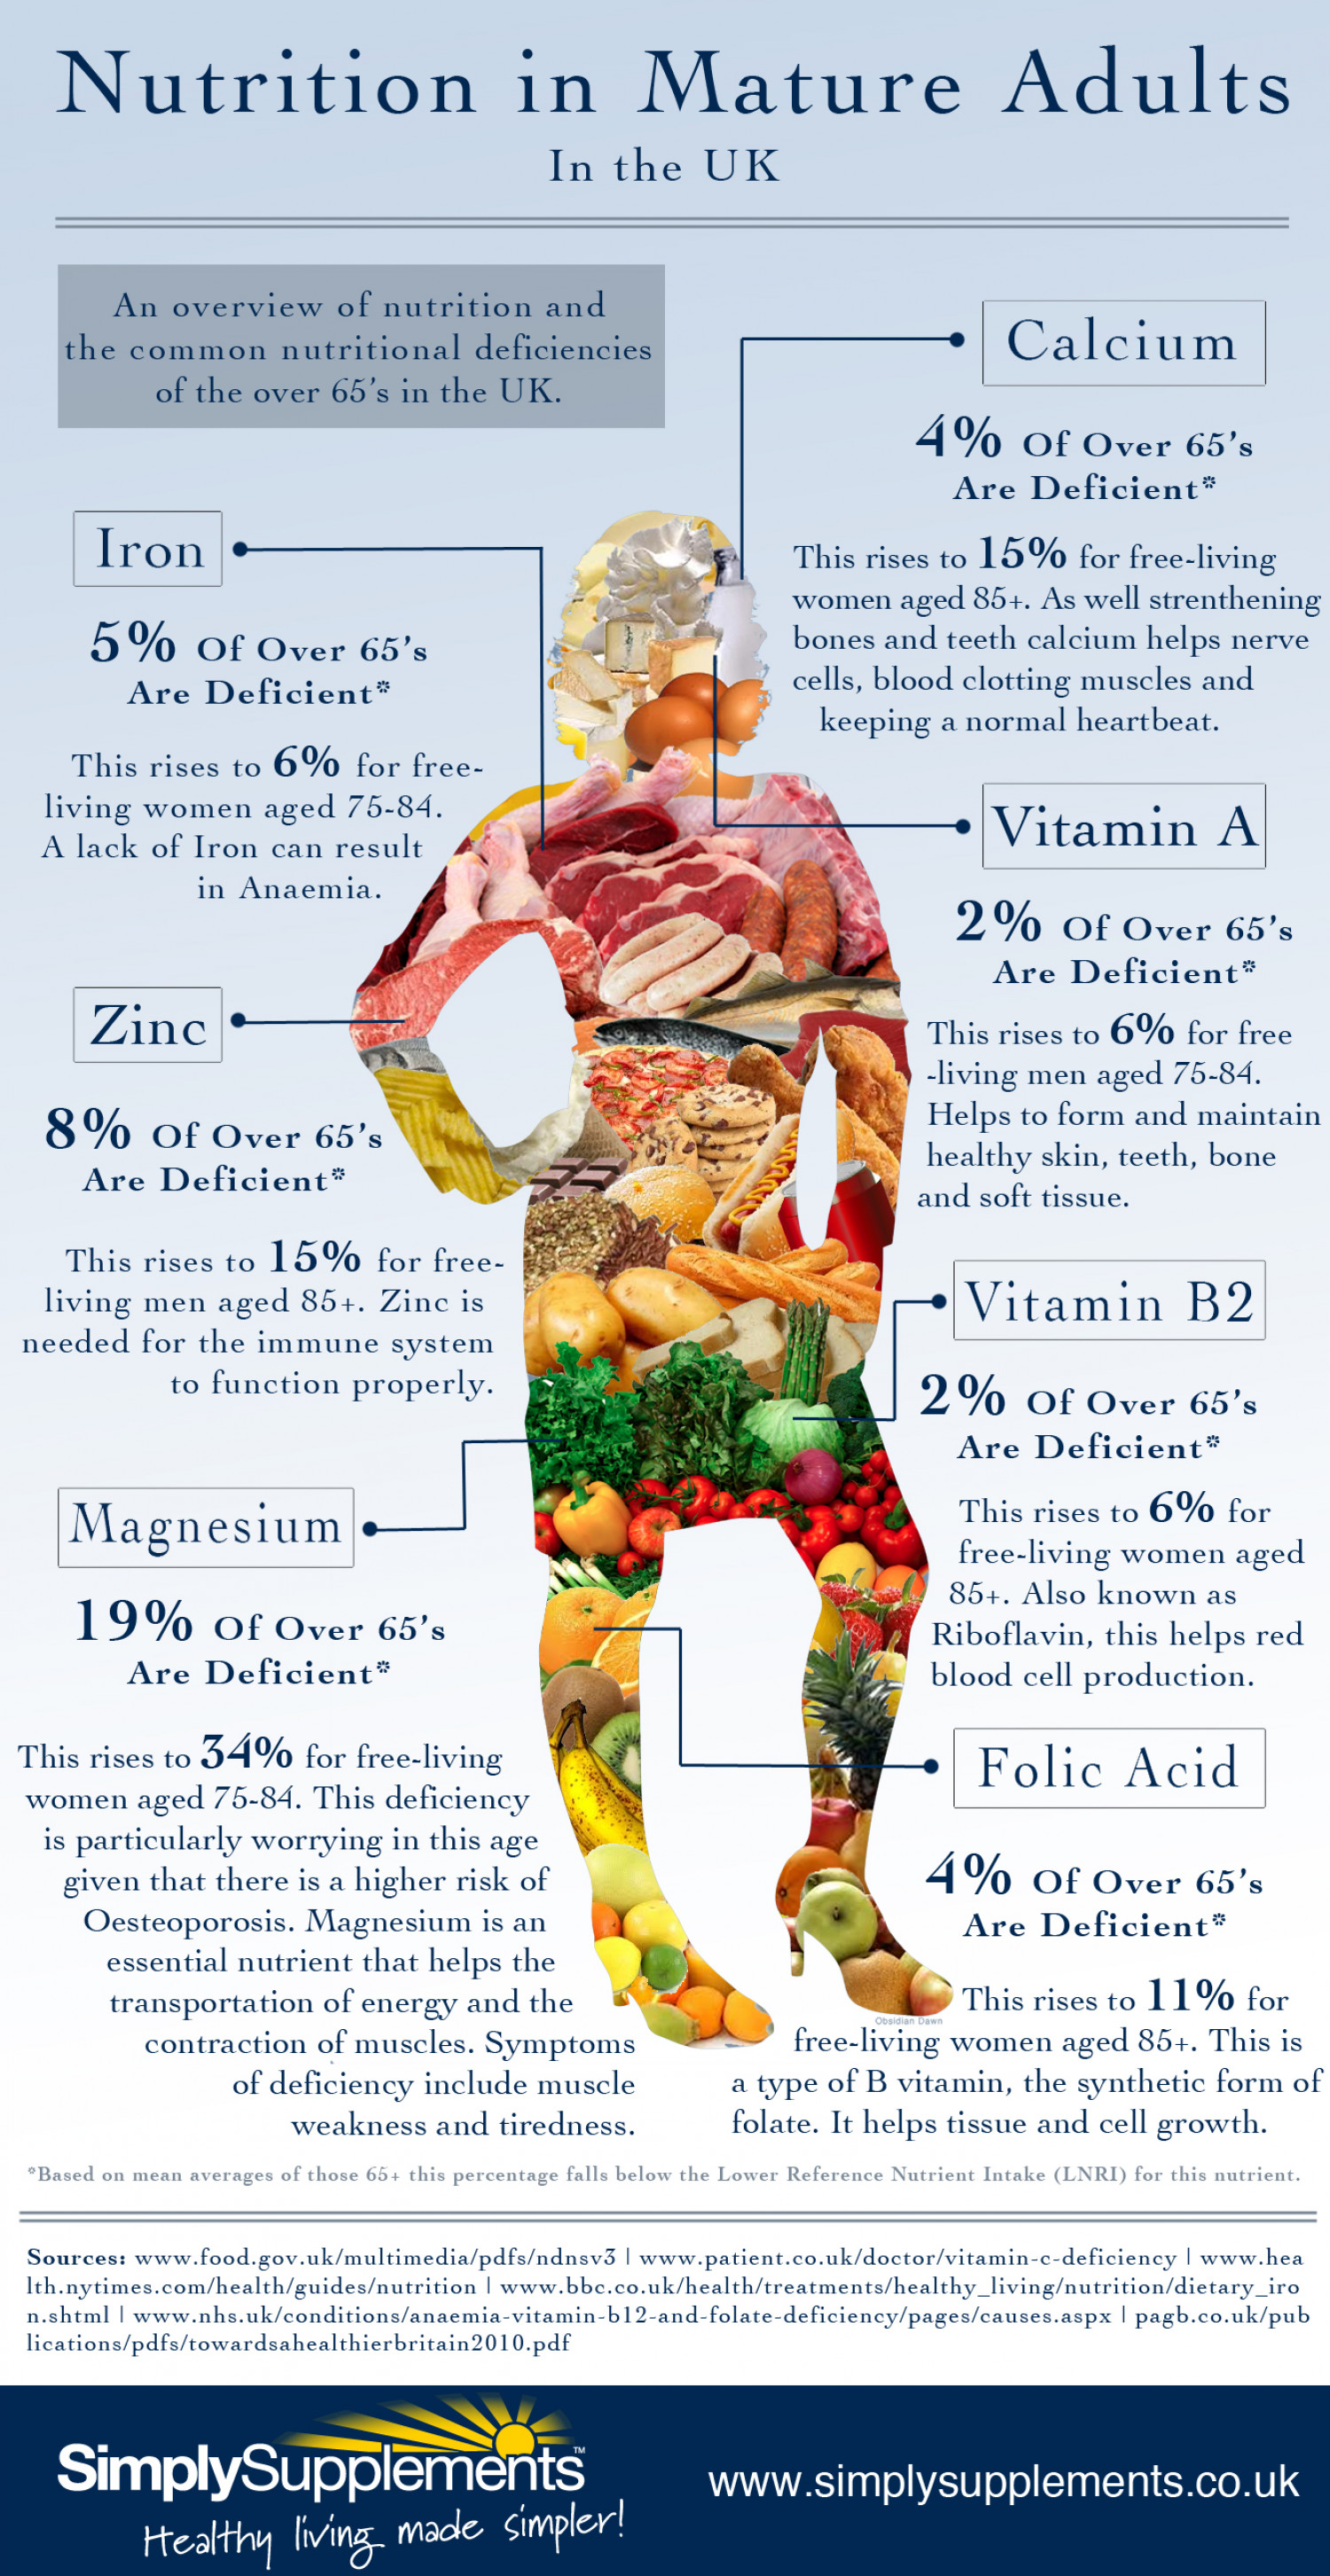 Nutrition of Mature Adults in the UK Infographic